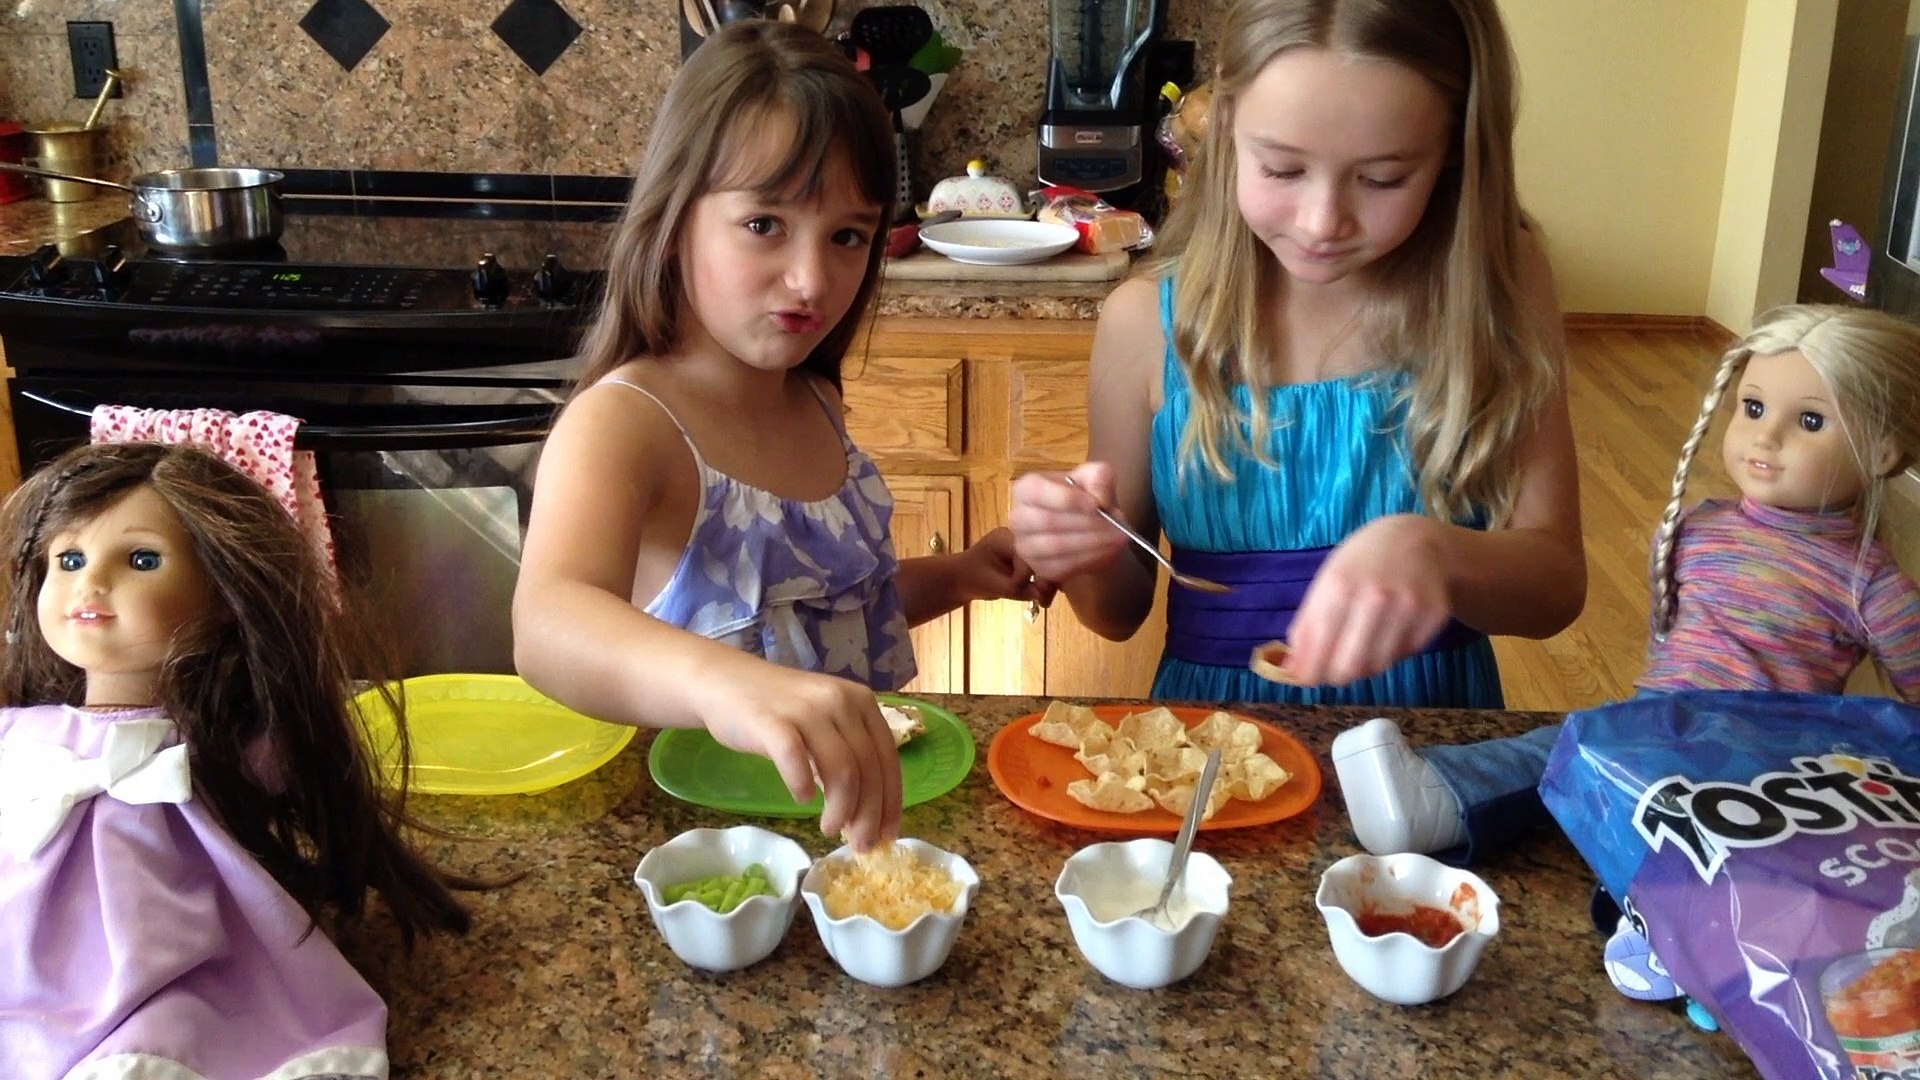 COOKING FOR AMERICAN GIRL DOLLS